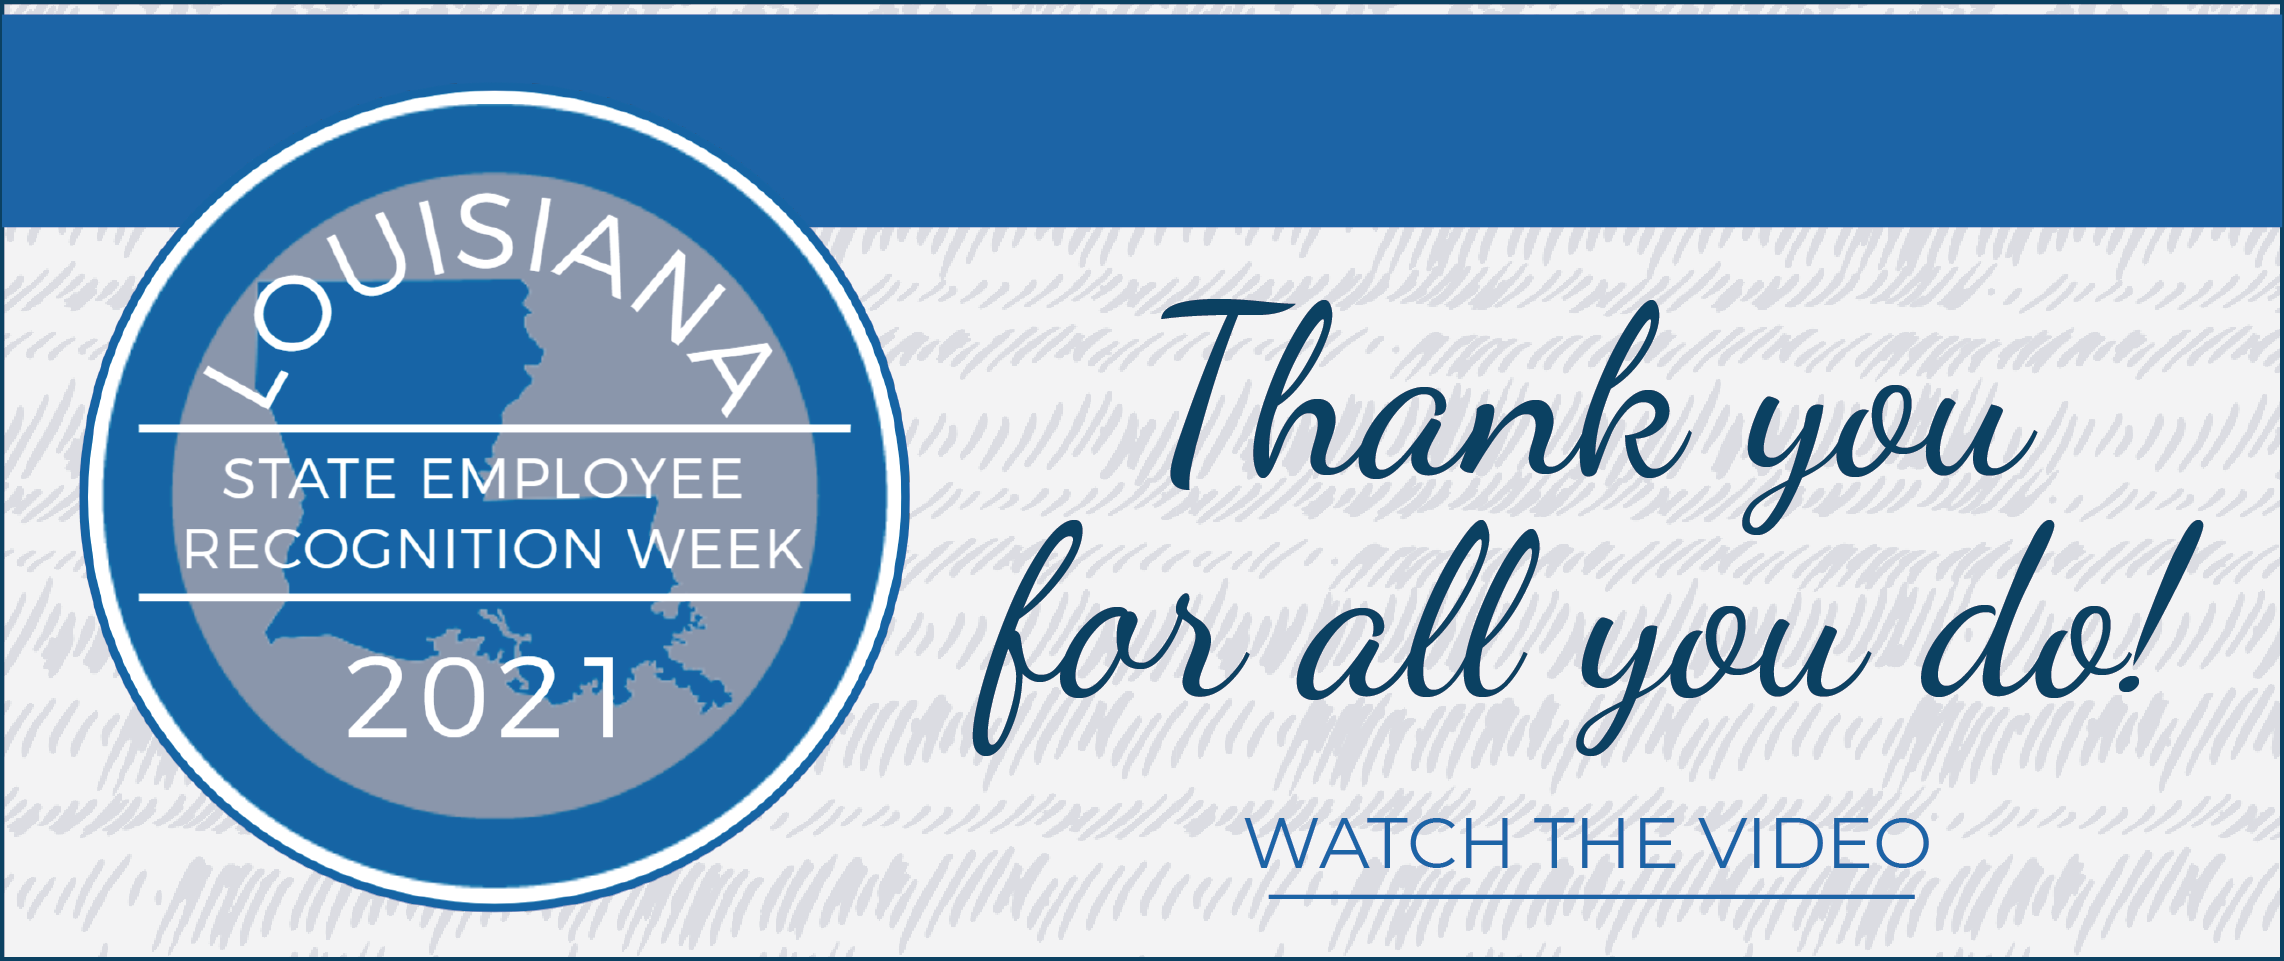 State Employee Recognition Week